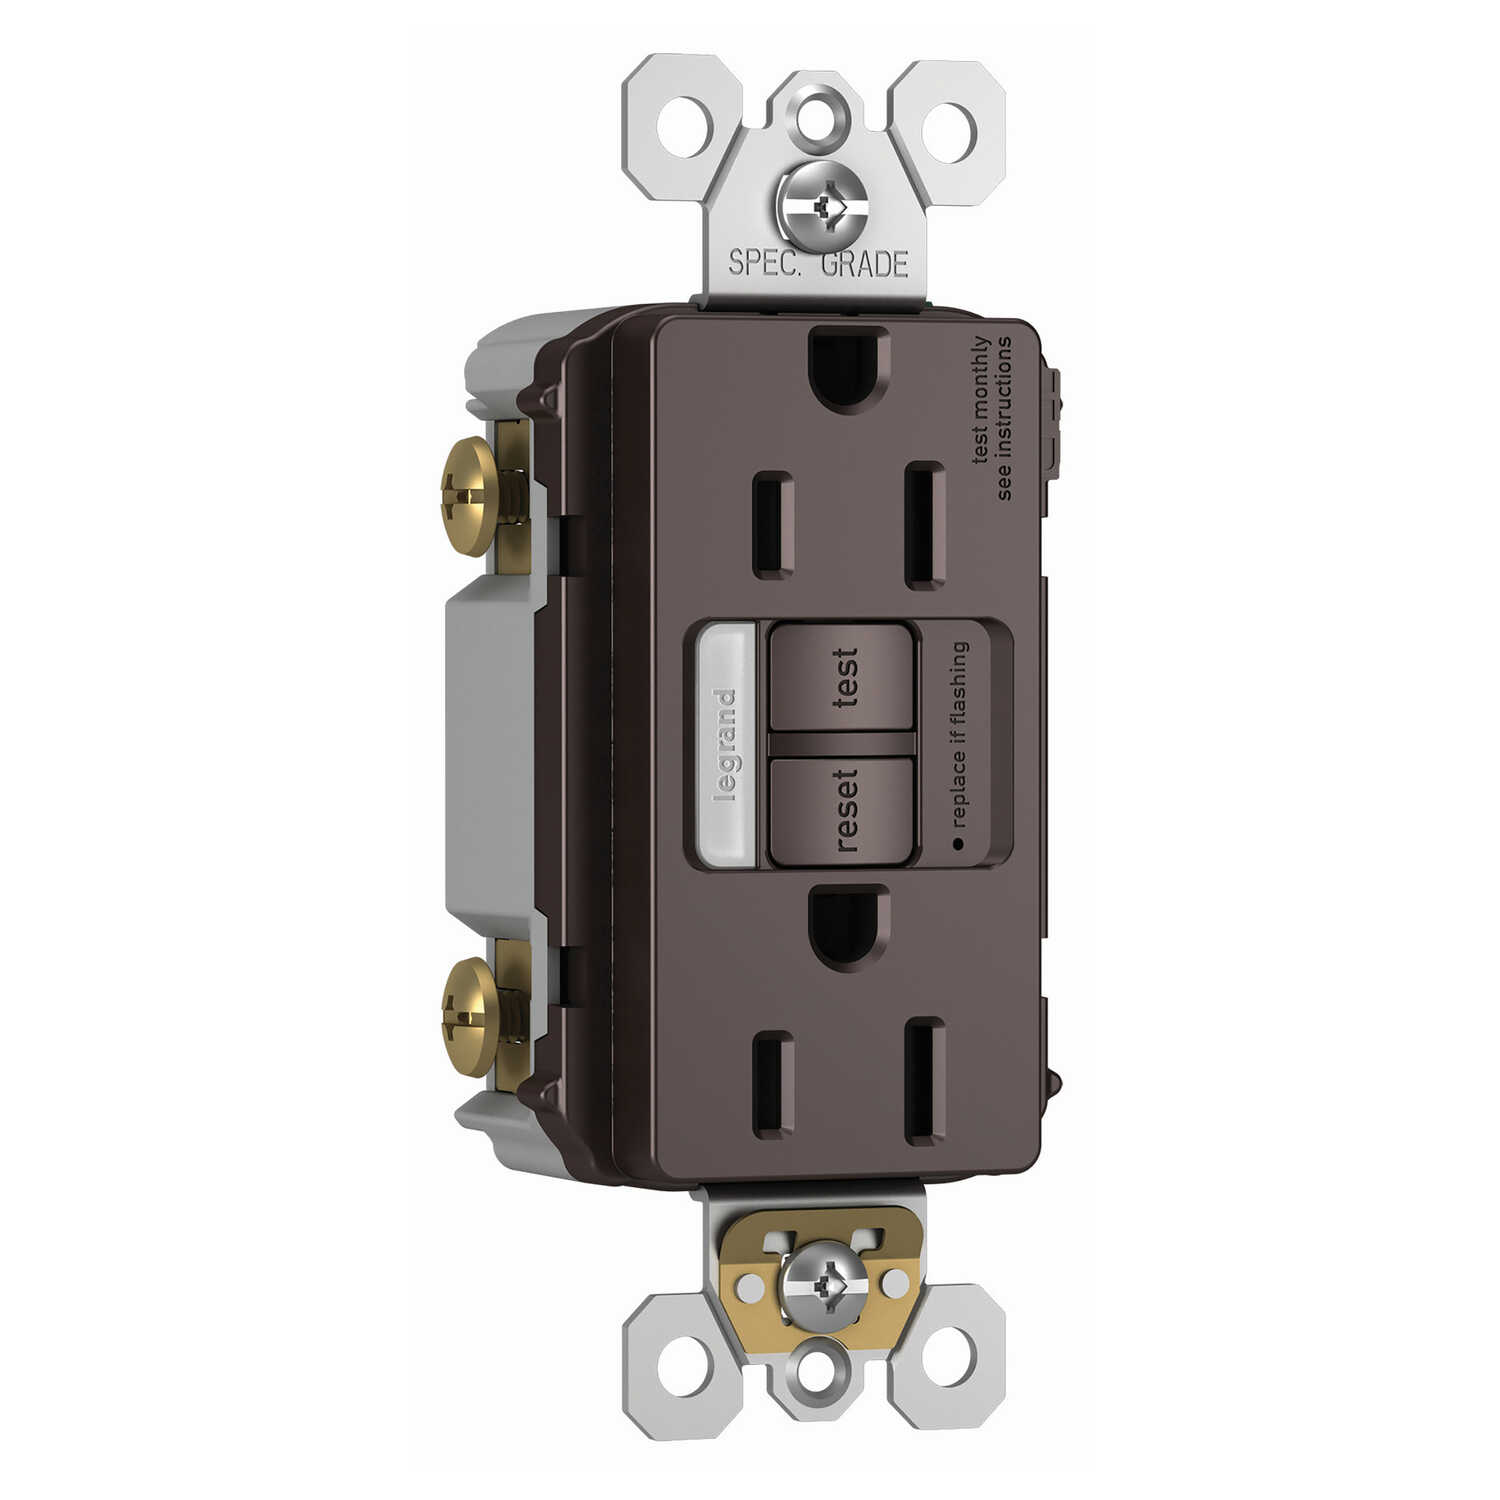 Legrand  Radiant  15 amps 125 volt Dark Bronze  Combination Outlet  5-15 R  1 pk